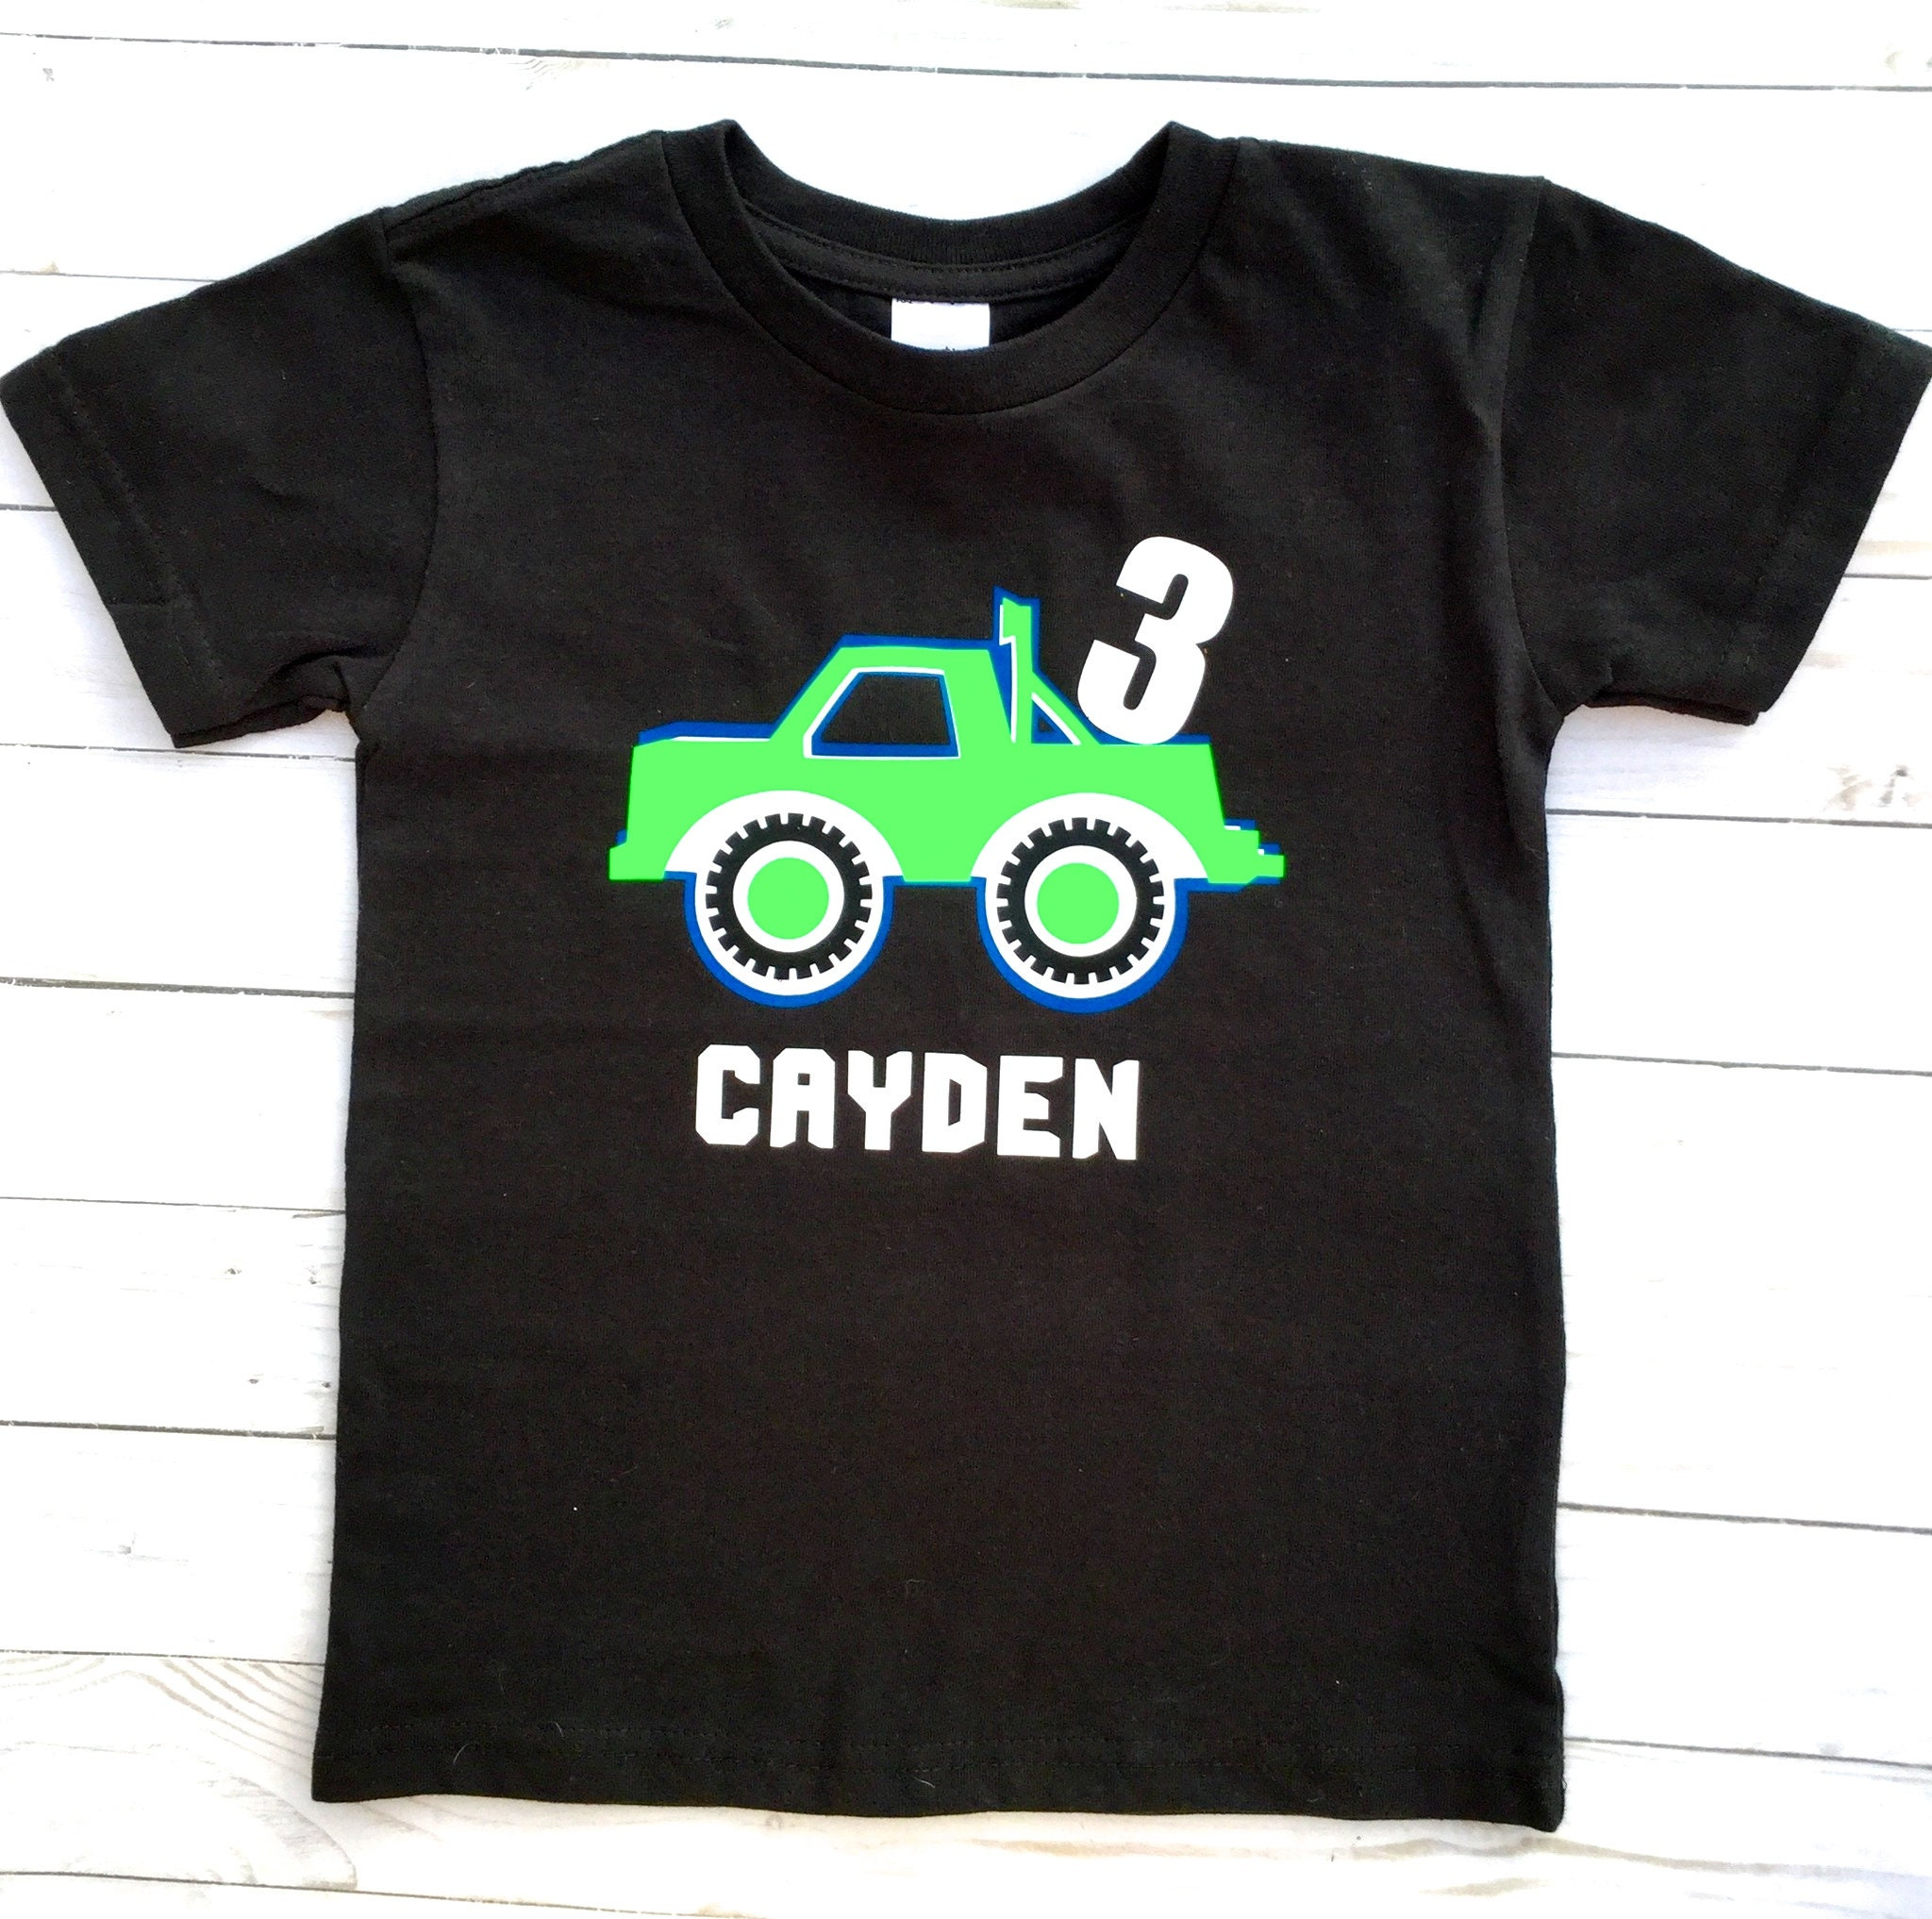 Personalized Toddler Boy Shirt Birthday Tshirt Outfit Child T Trucks 3 Years Old 2